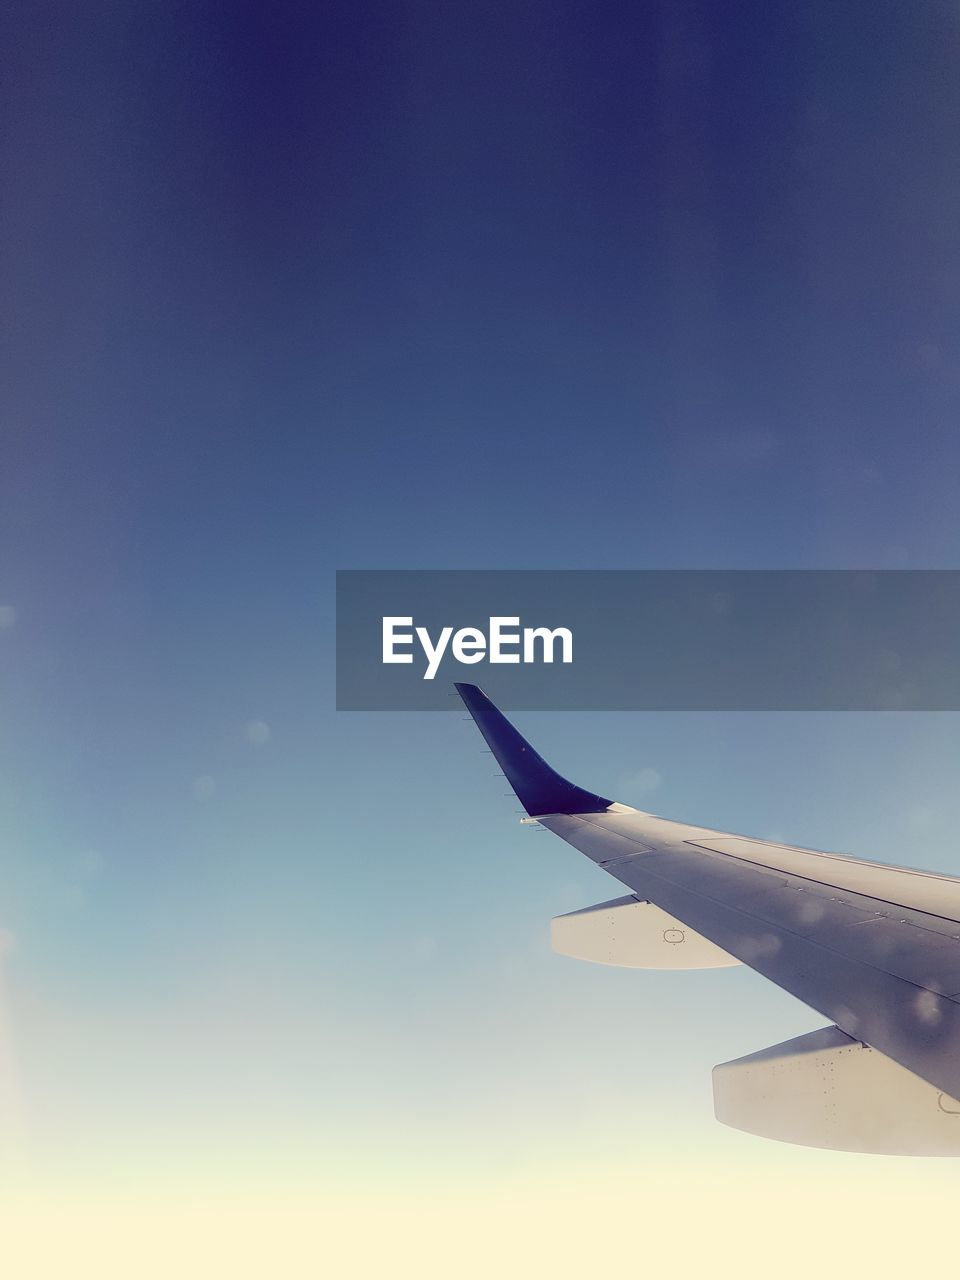 airplane, journey, flying, transportation, airplane wing, sky, air vehicle, mid-air, nature, aircraft wing, beauty in nature, cloud - sky, mode of transport, travel, blue, outdoors, no people, scenics, day, close-up